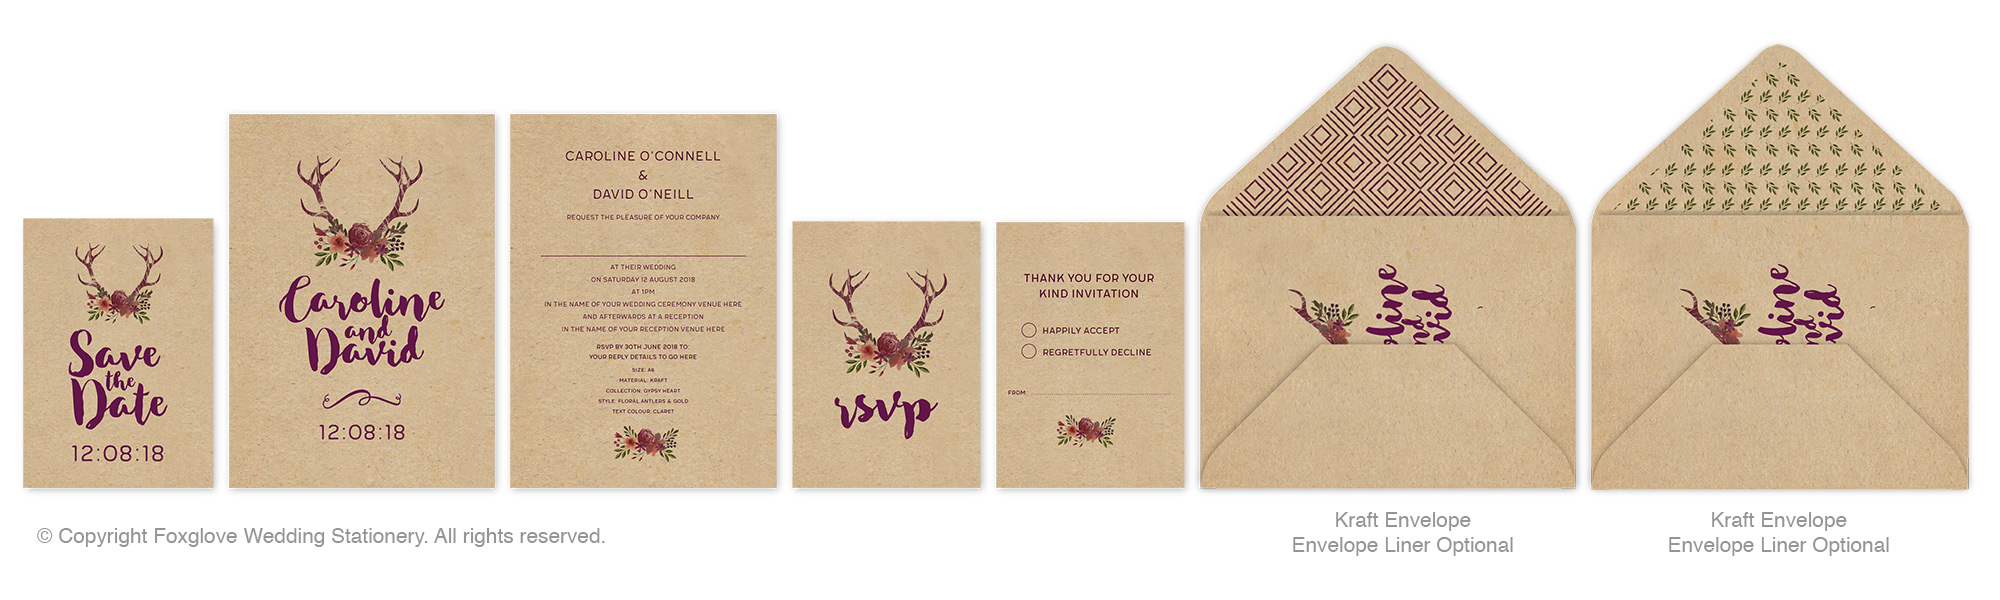 FLORAL ANTLERS - This range can be printed on Uncoated, Gesso, Pearl, Kraft, Cream & Silk Card Stock.Price range A6 Invites from £1.40 per invite. Price includes matching envelopes.Contact us for Full Specification & Price Guide or to request a sample. See photographic image in the Gallery.